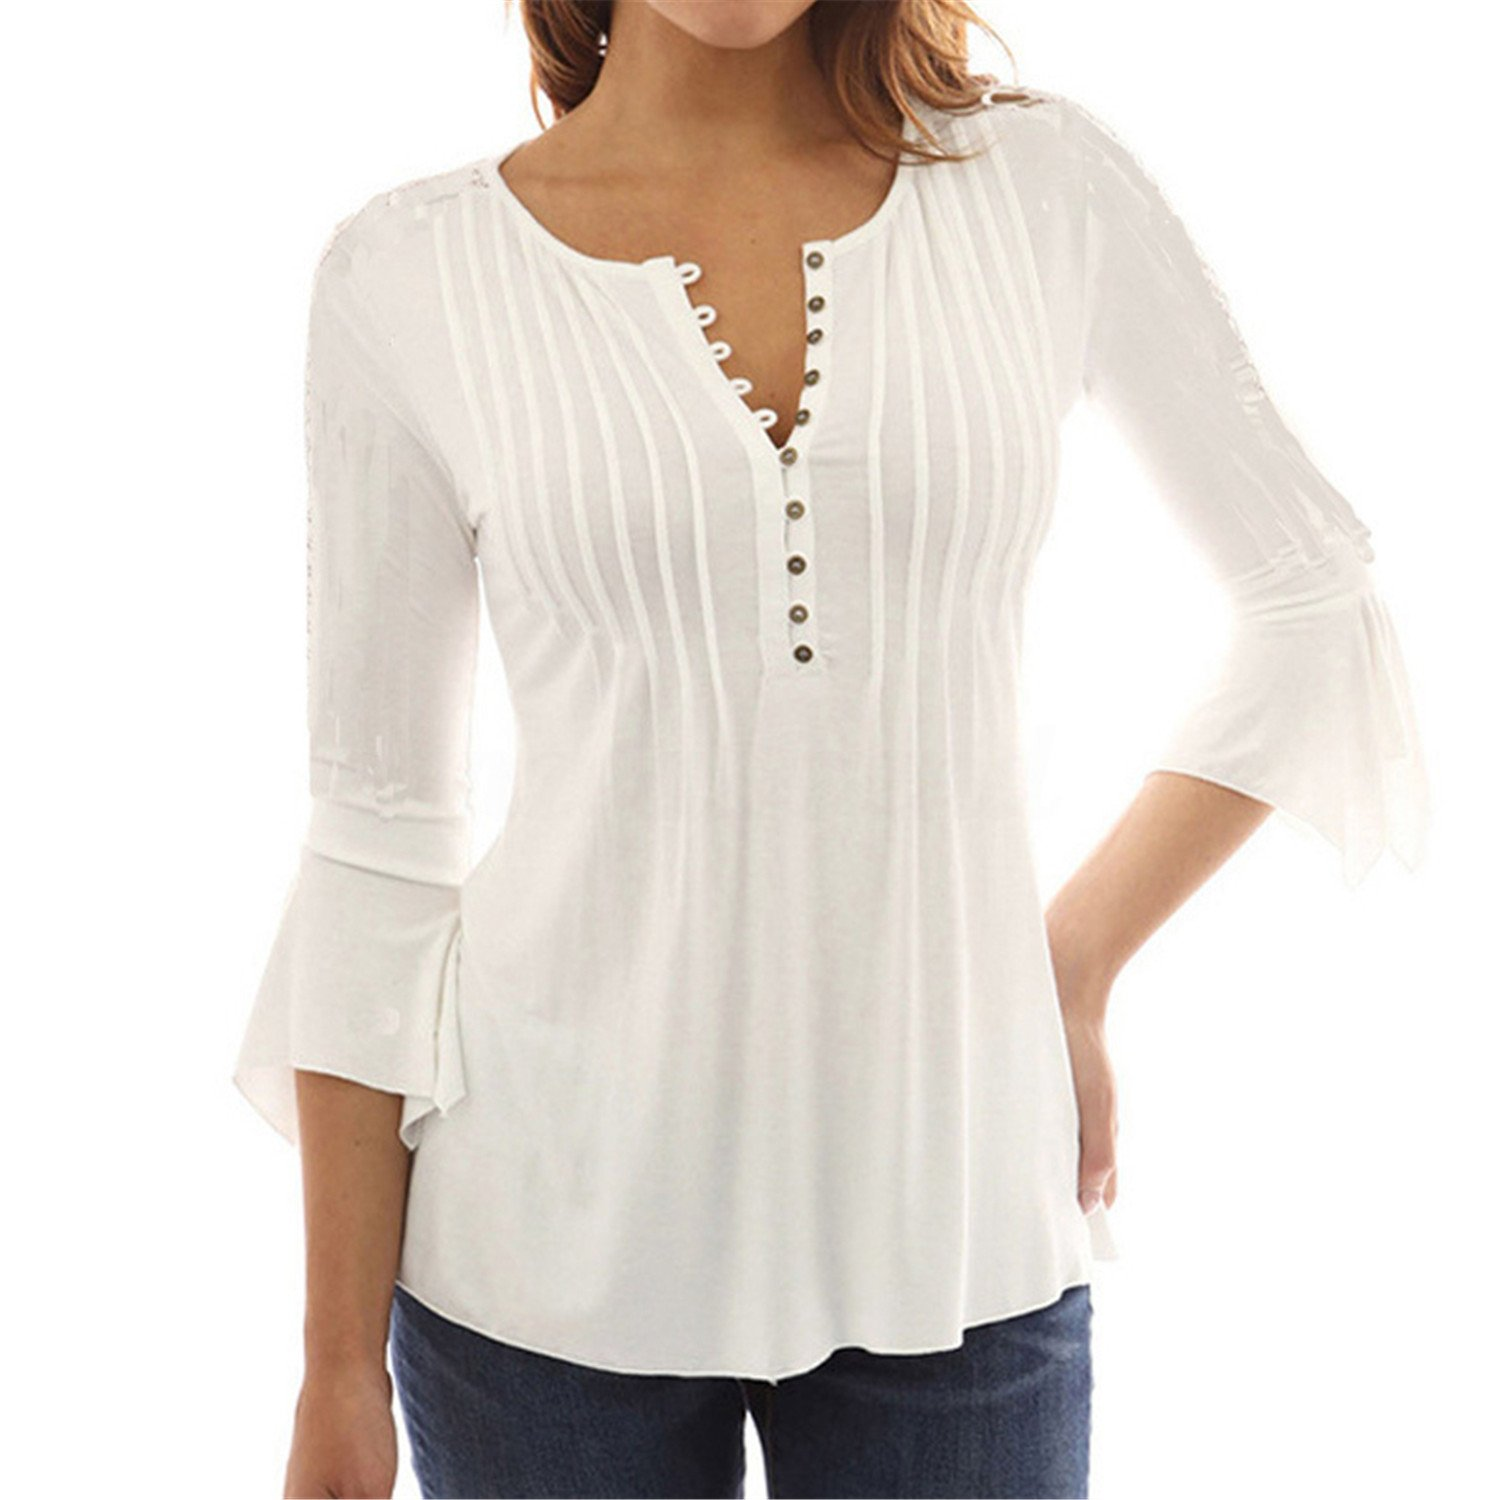 FJ-Direct Button Chemise Cotton Women Long Sleeve Women Blusas Camisas Shirts at Amazon Womens Clothing store: